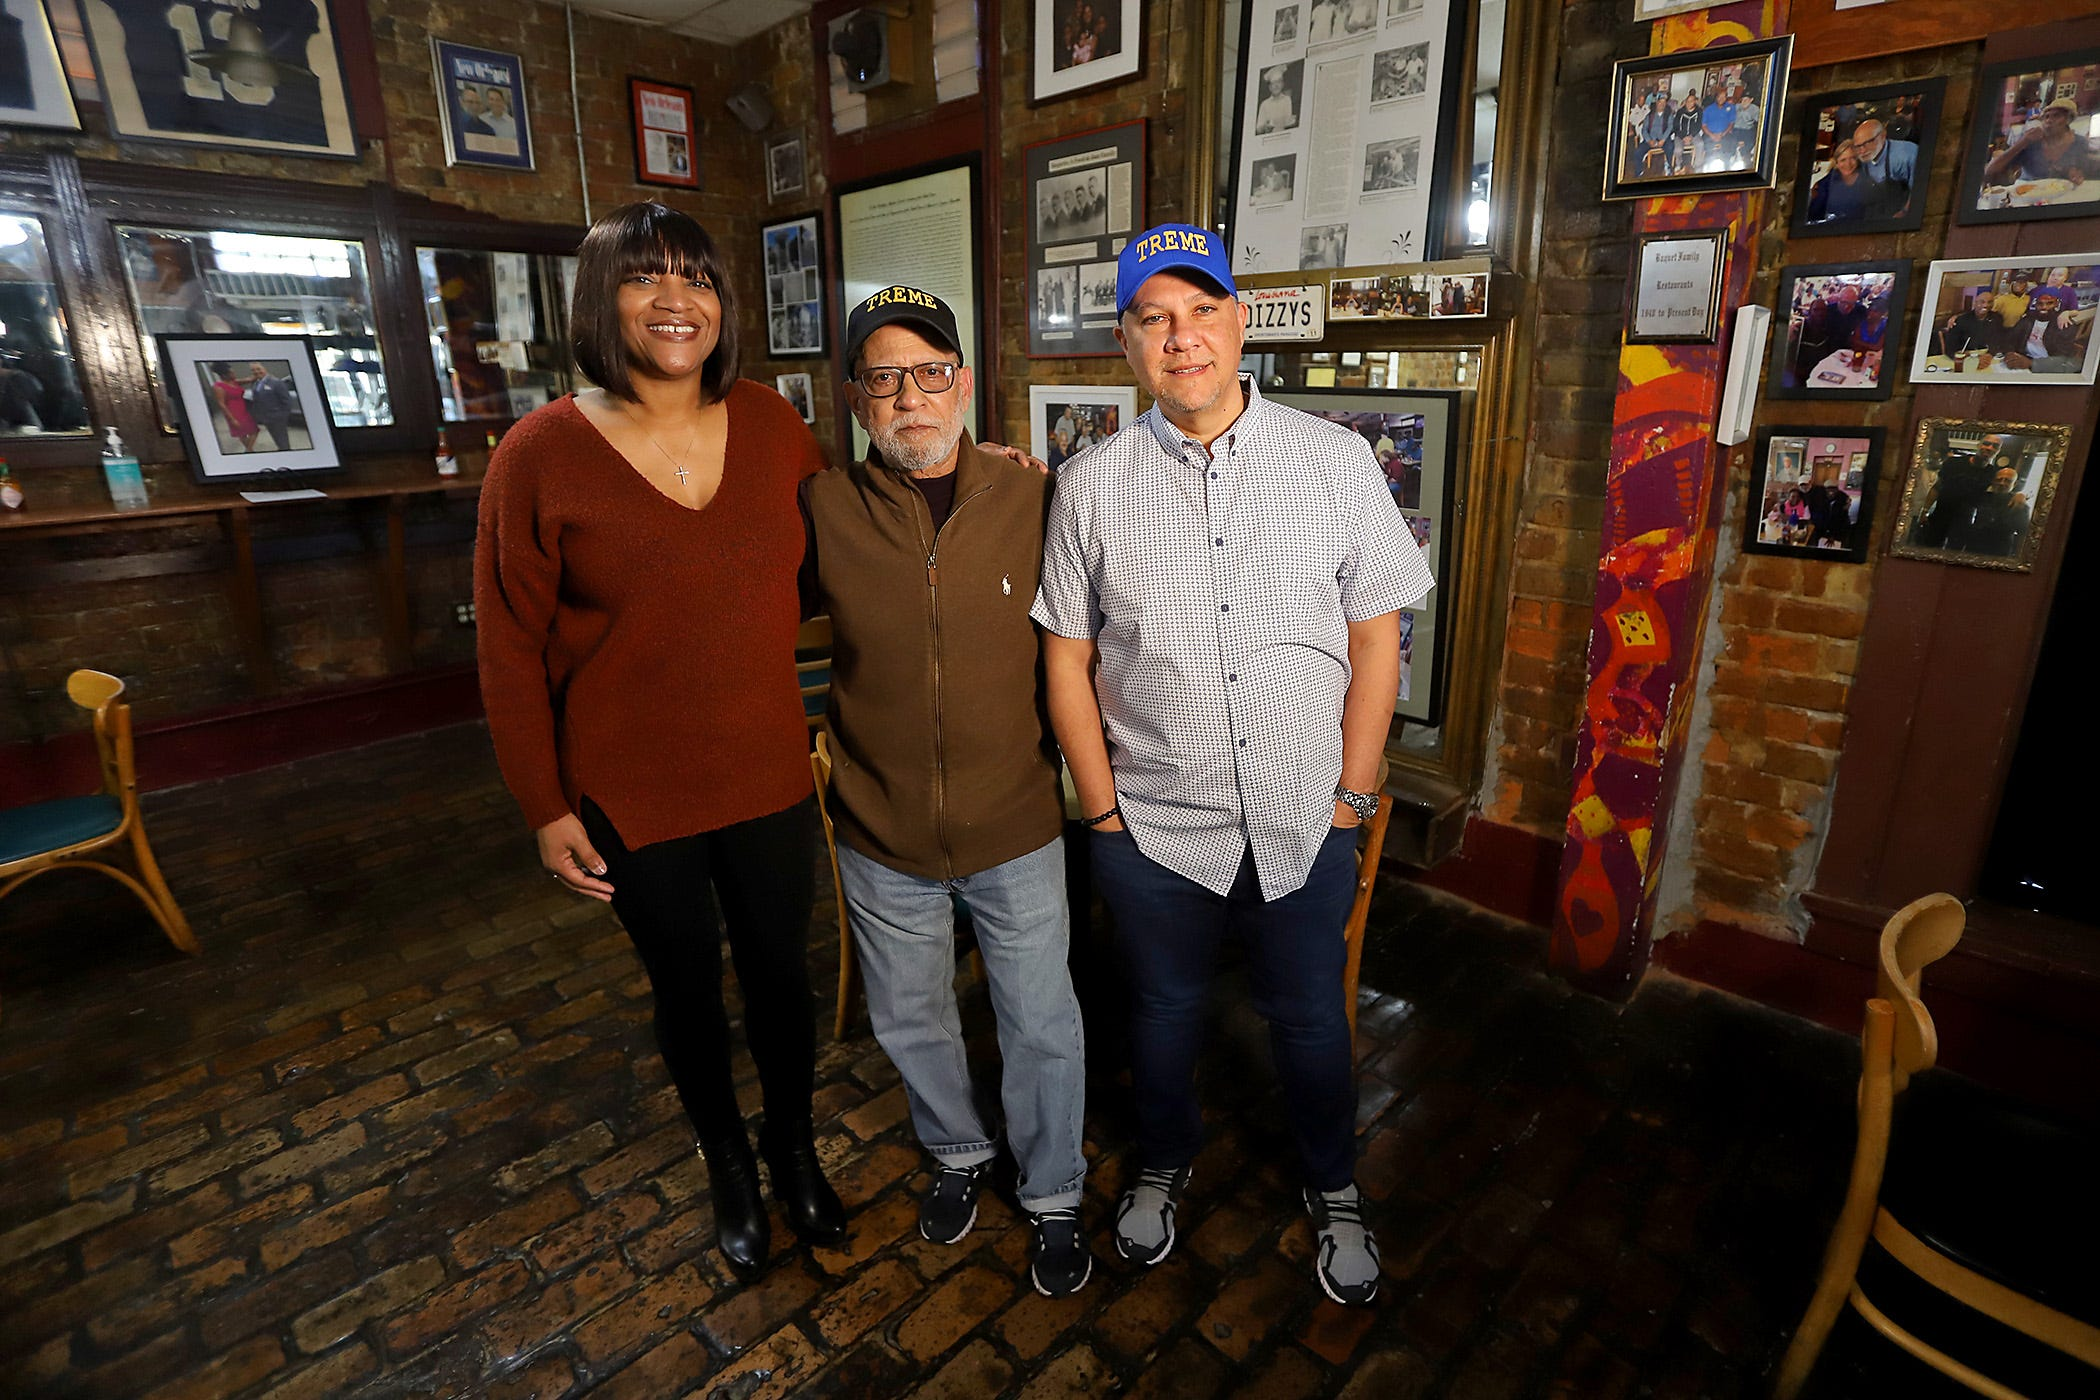 (L to R) Arkesha Baquet, Wayne Baquet Sr. and Wayne Baquet Jr. at Li'l Dizzy's Cafe in the Treme neighborhood of New Orleans. Photographed on Sunday, March 7, 2021.